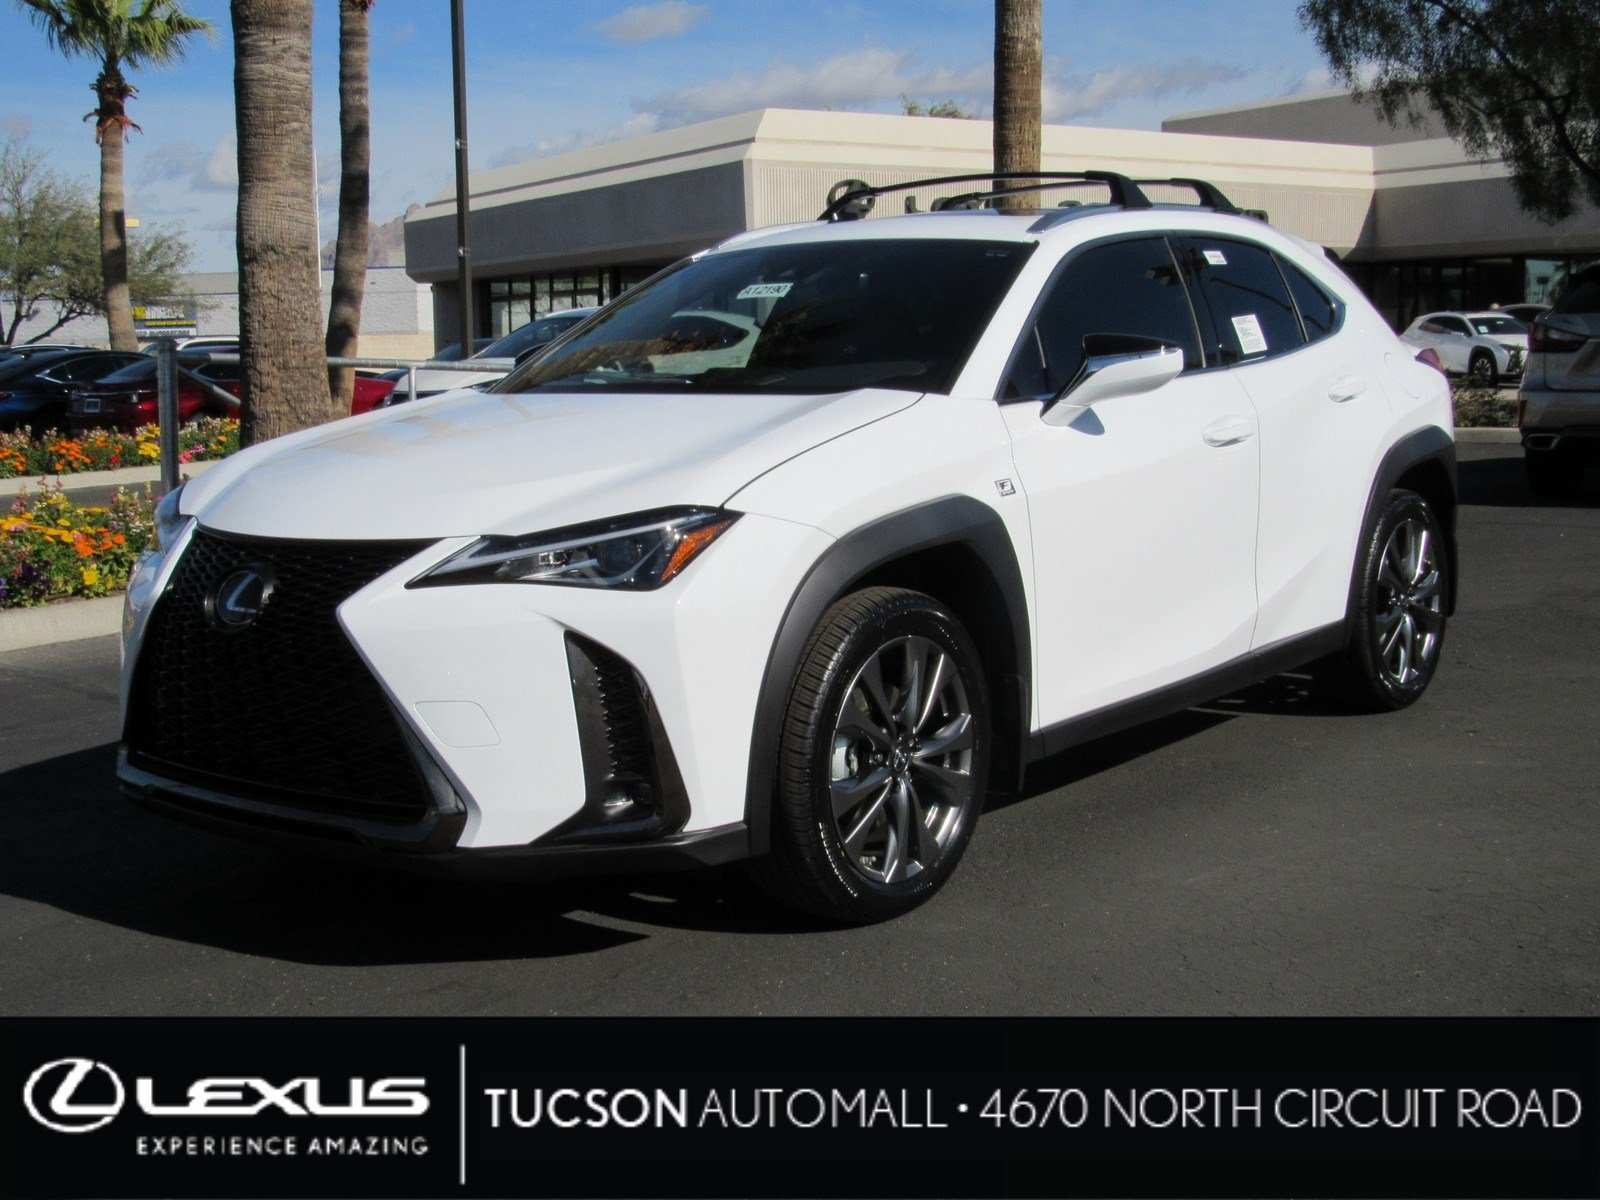 88 All New 2019 Lexus Ux200 Price And Release Date